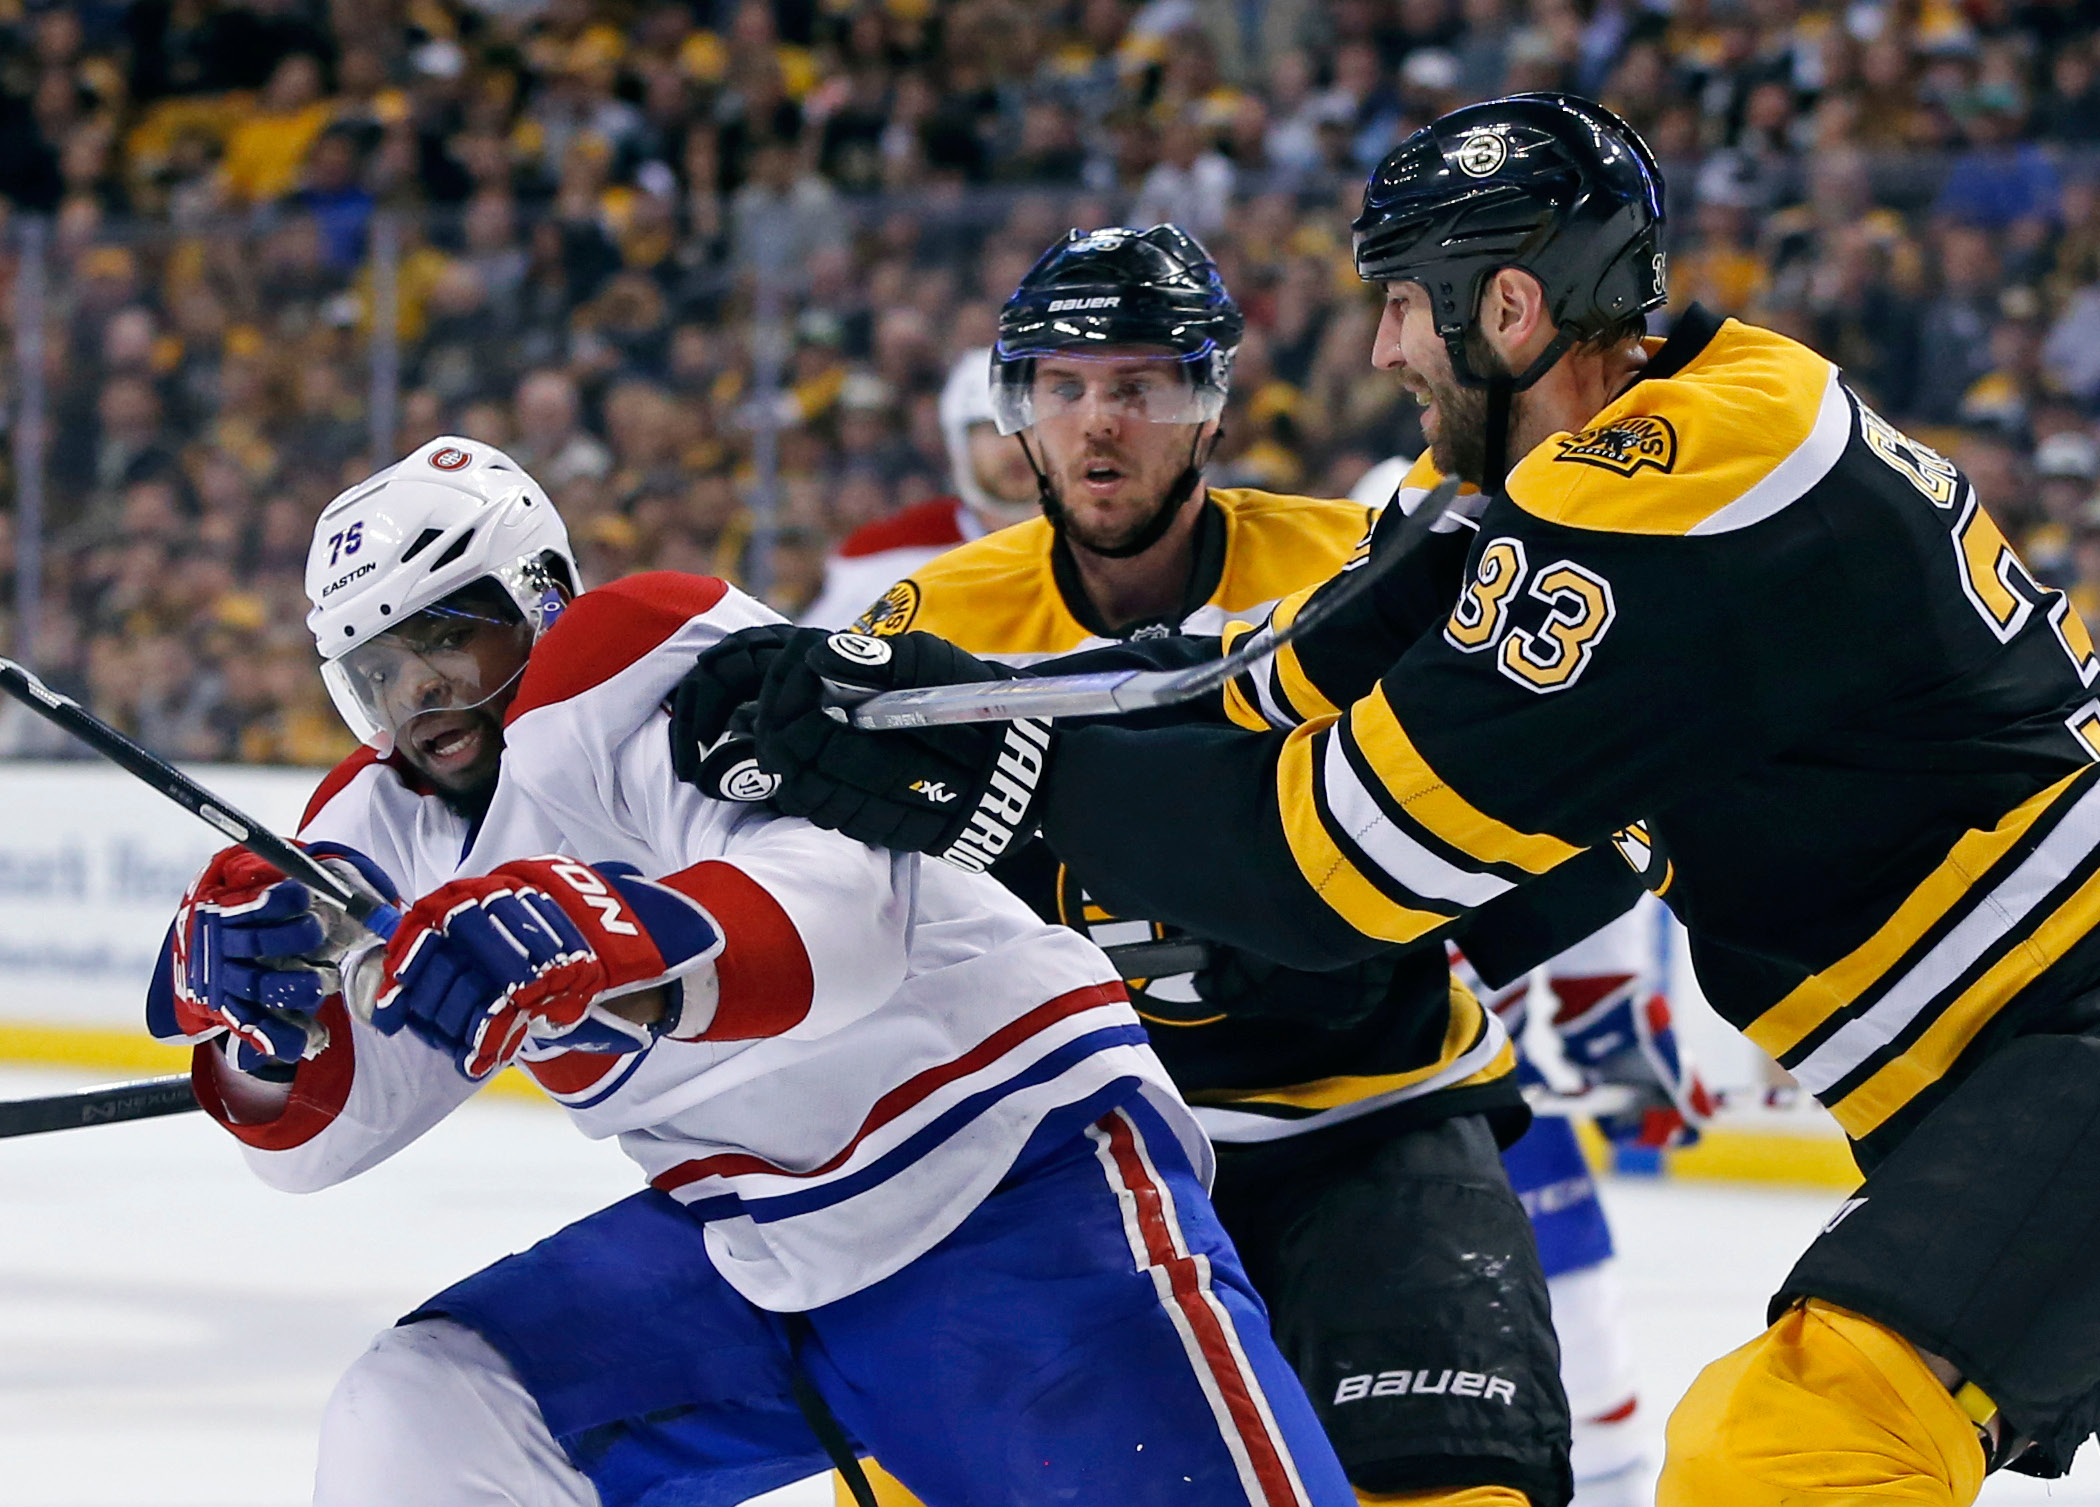 Boston Bruins defenseman Zdeno Chara (33) tries to move Montreal Canadiens defenseman P.K. Subban (76) off the puck as Bruins center David Krejci, middle, looks on during the second period in Game 2 of an NHL hockey second-round playoff series in Boston, Saturday, May 3, 2014. (AP Photo/Elise Amendola)